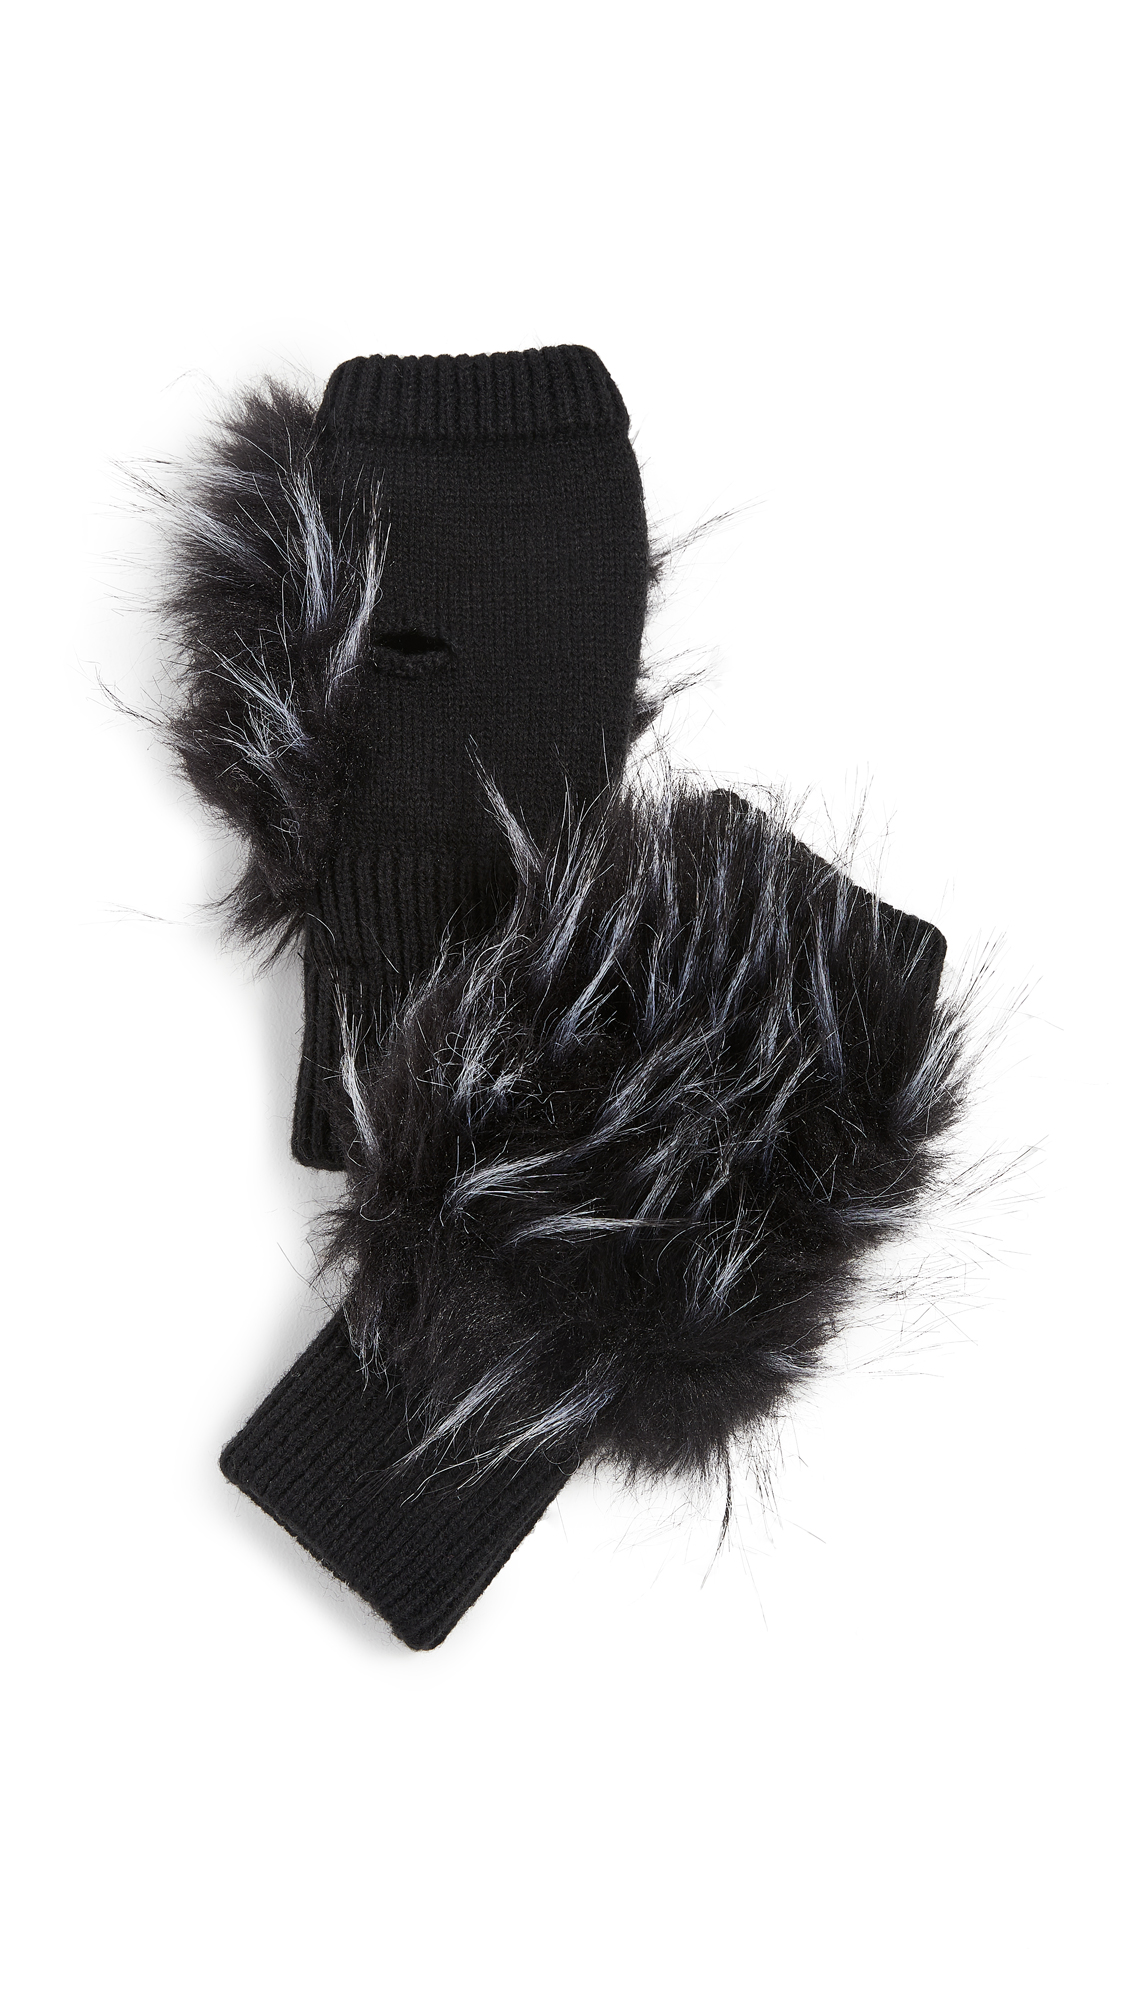 Jocelyn Long Hair Faux Fur Texty Time Mitten